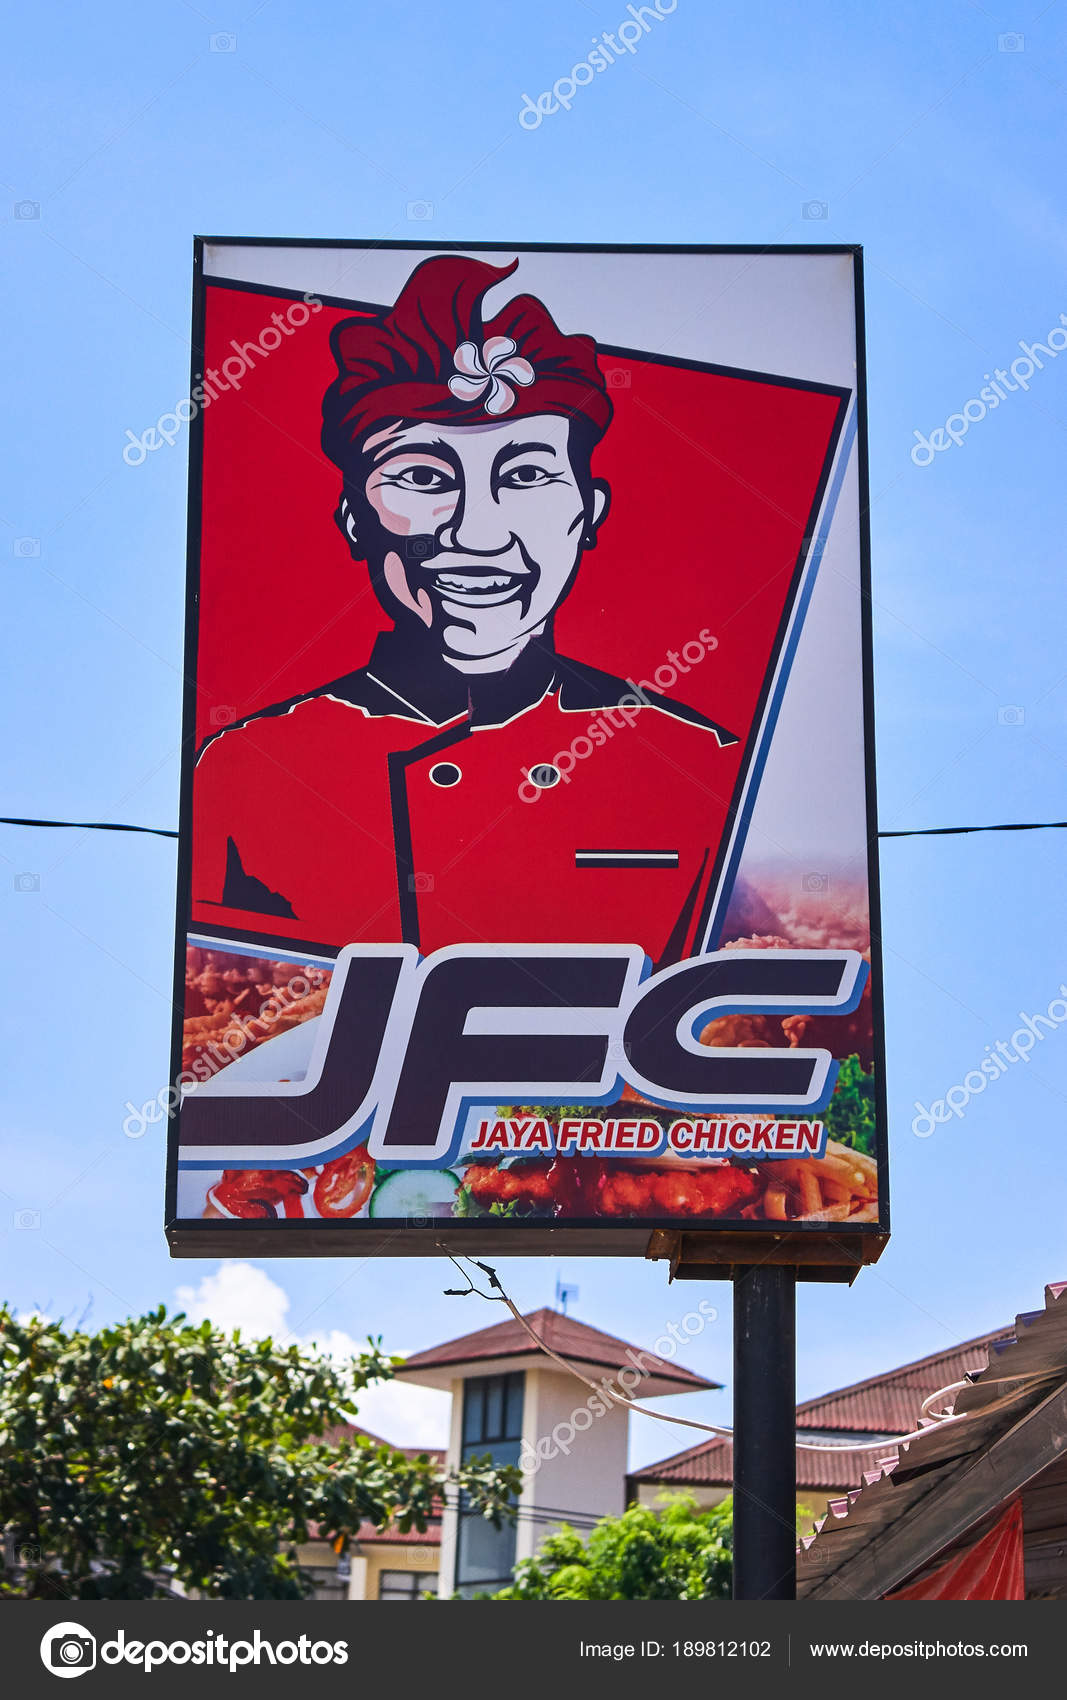 BALI, INDONESIA - DECEMBER 4, 2017: JFC, Jaya Fried Chicken fast